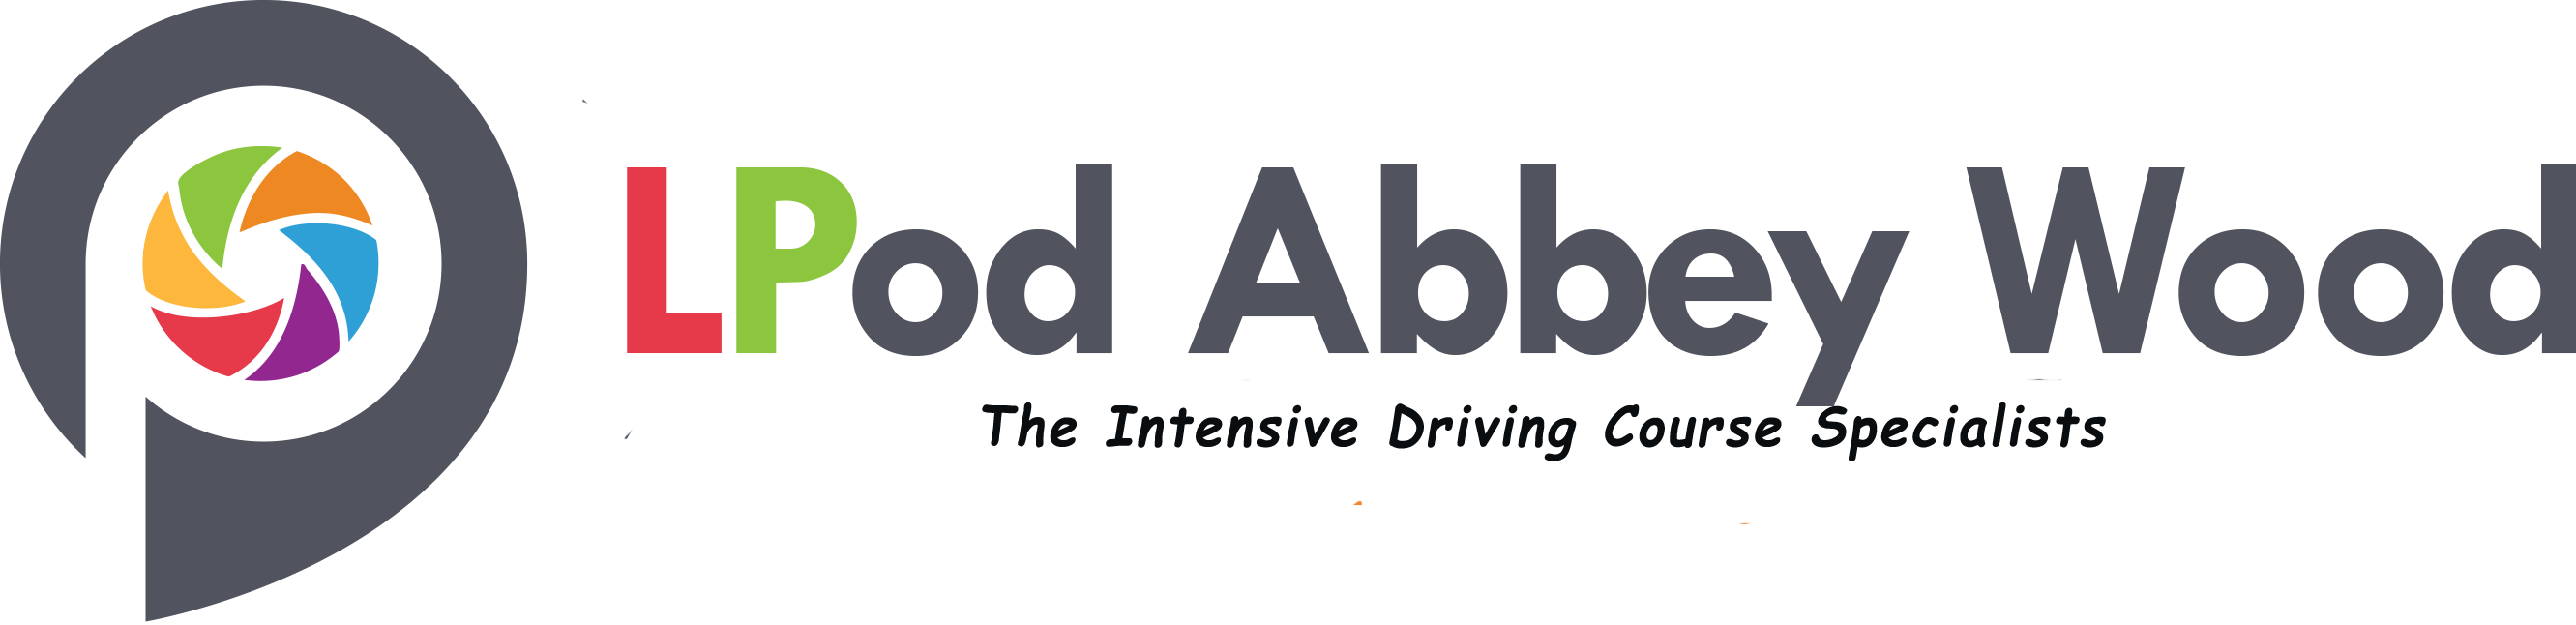 intensive driving courses abbey wood, fast pass courses abbey wood